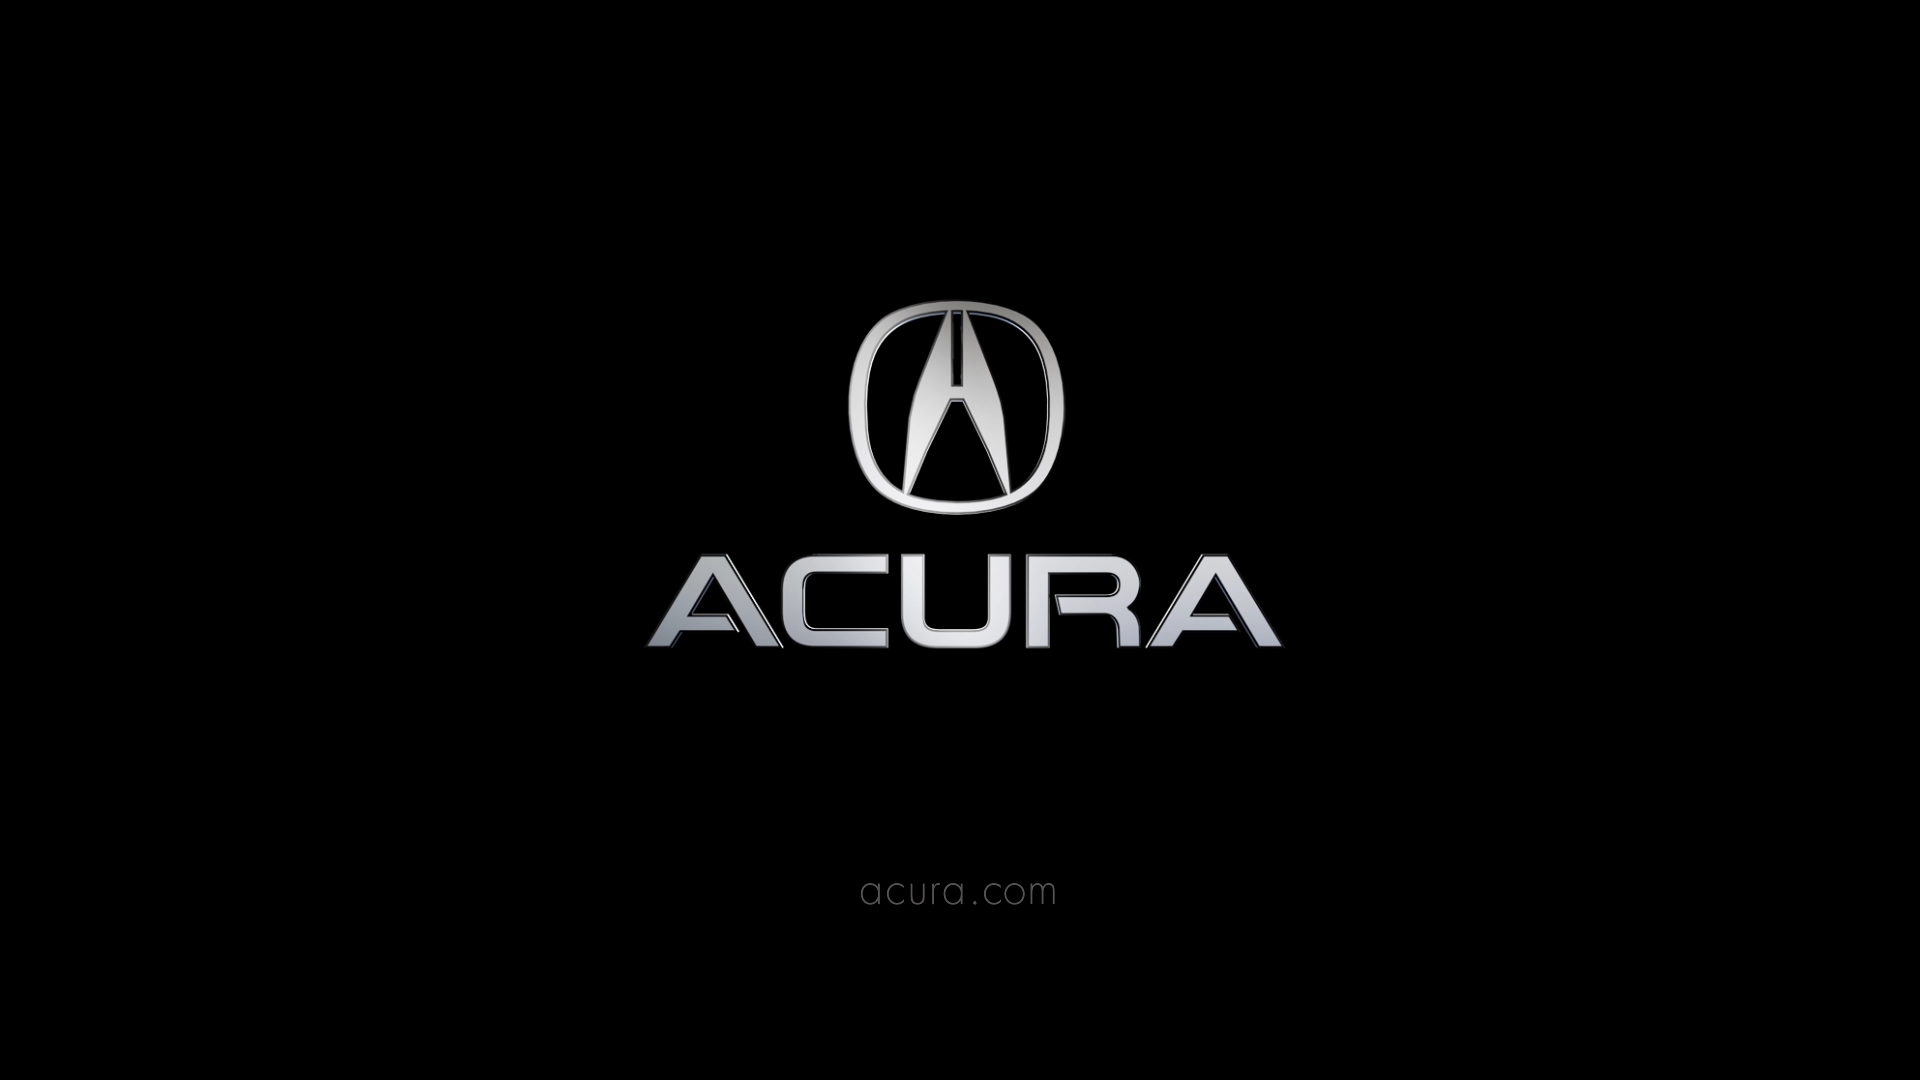 Acura Parties With Passwords (00703)